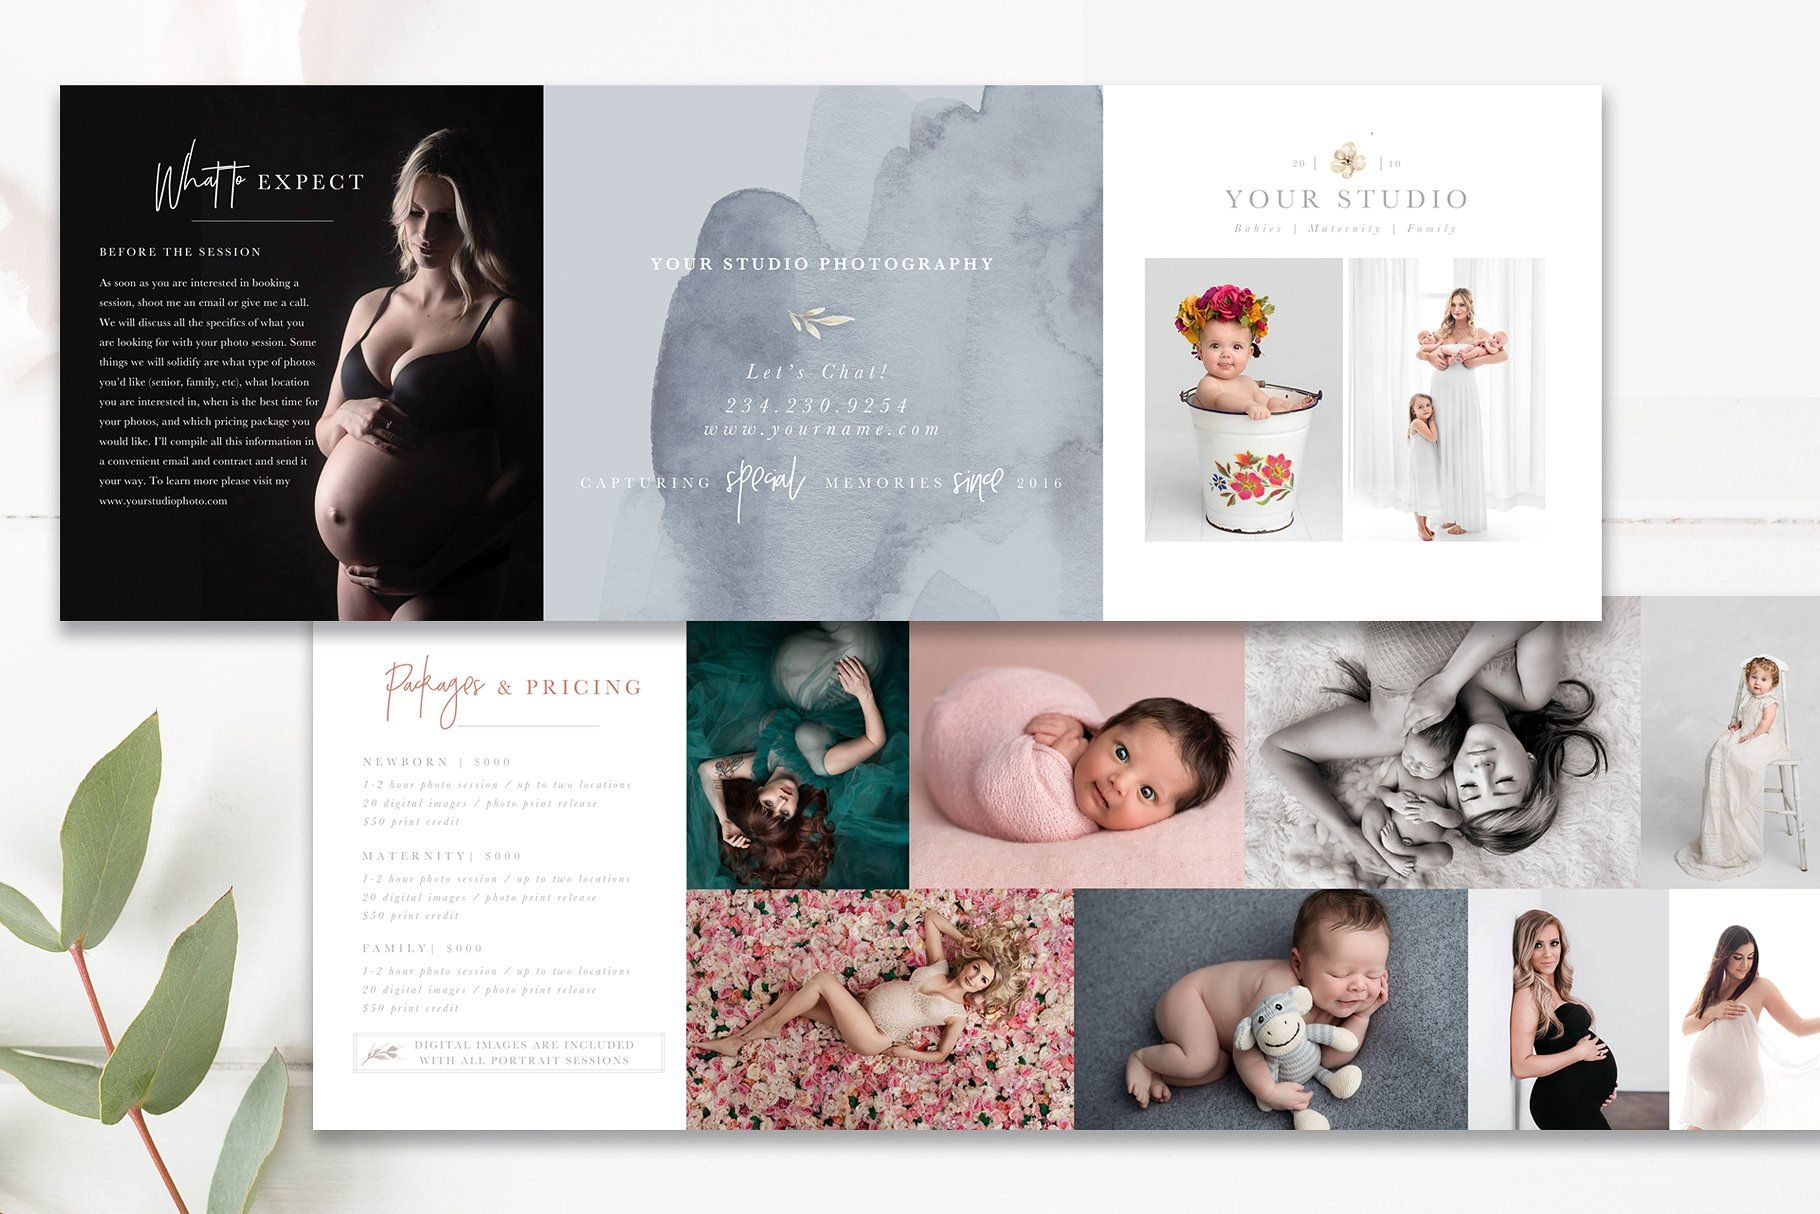 Trifold Brochure Flyer Modern High End 5x5 Trifold Accordion Template To Use With Whcc Specs Trifold Brochure Rack Card Templates Photoshop Template Design